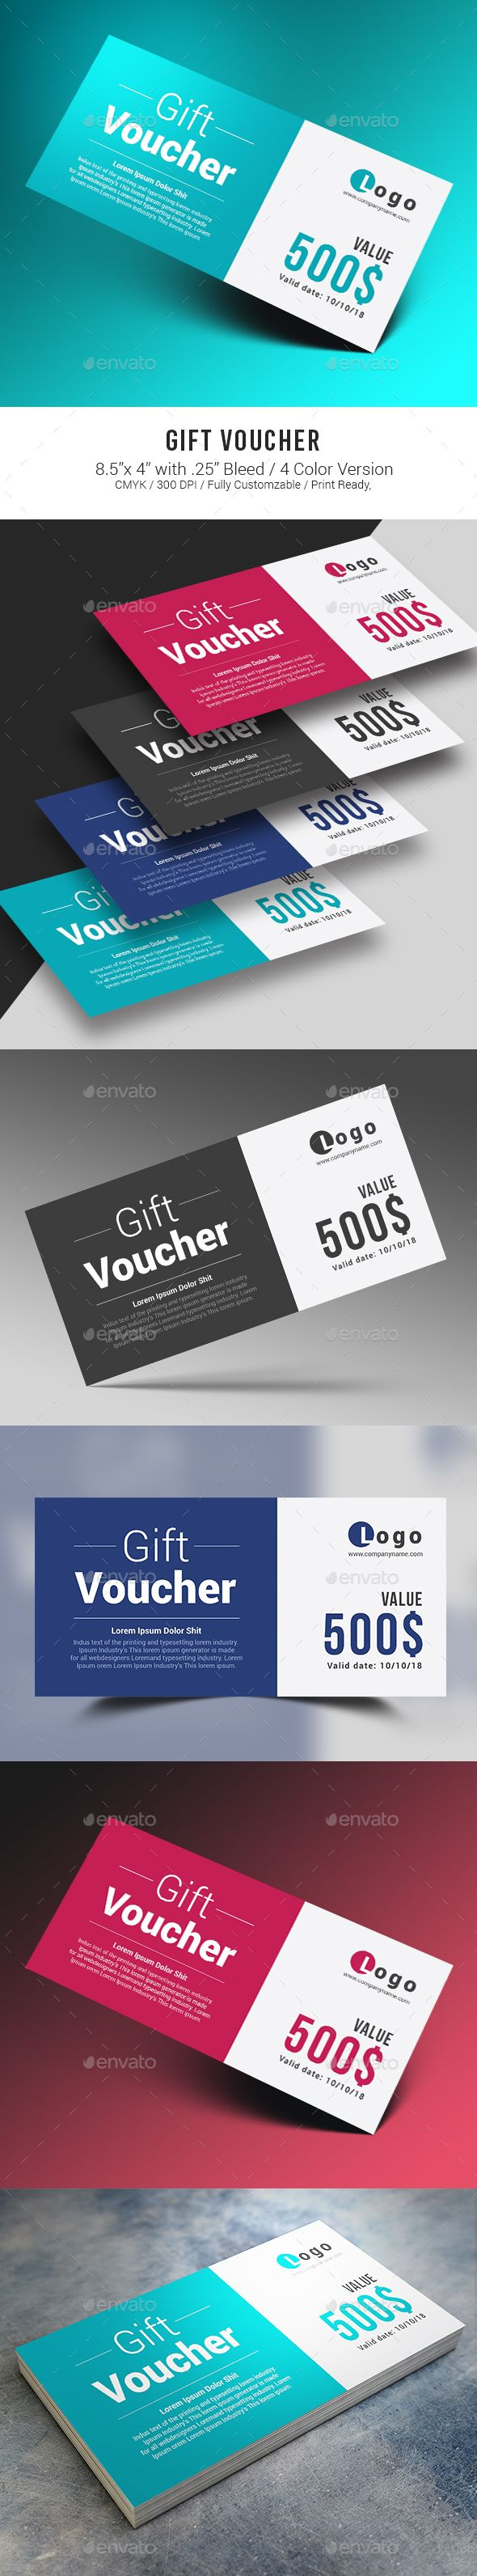 26 best gift voucher design images on pinterest box design gift voucher flyer templatepsd yadclub Image collections